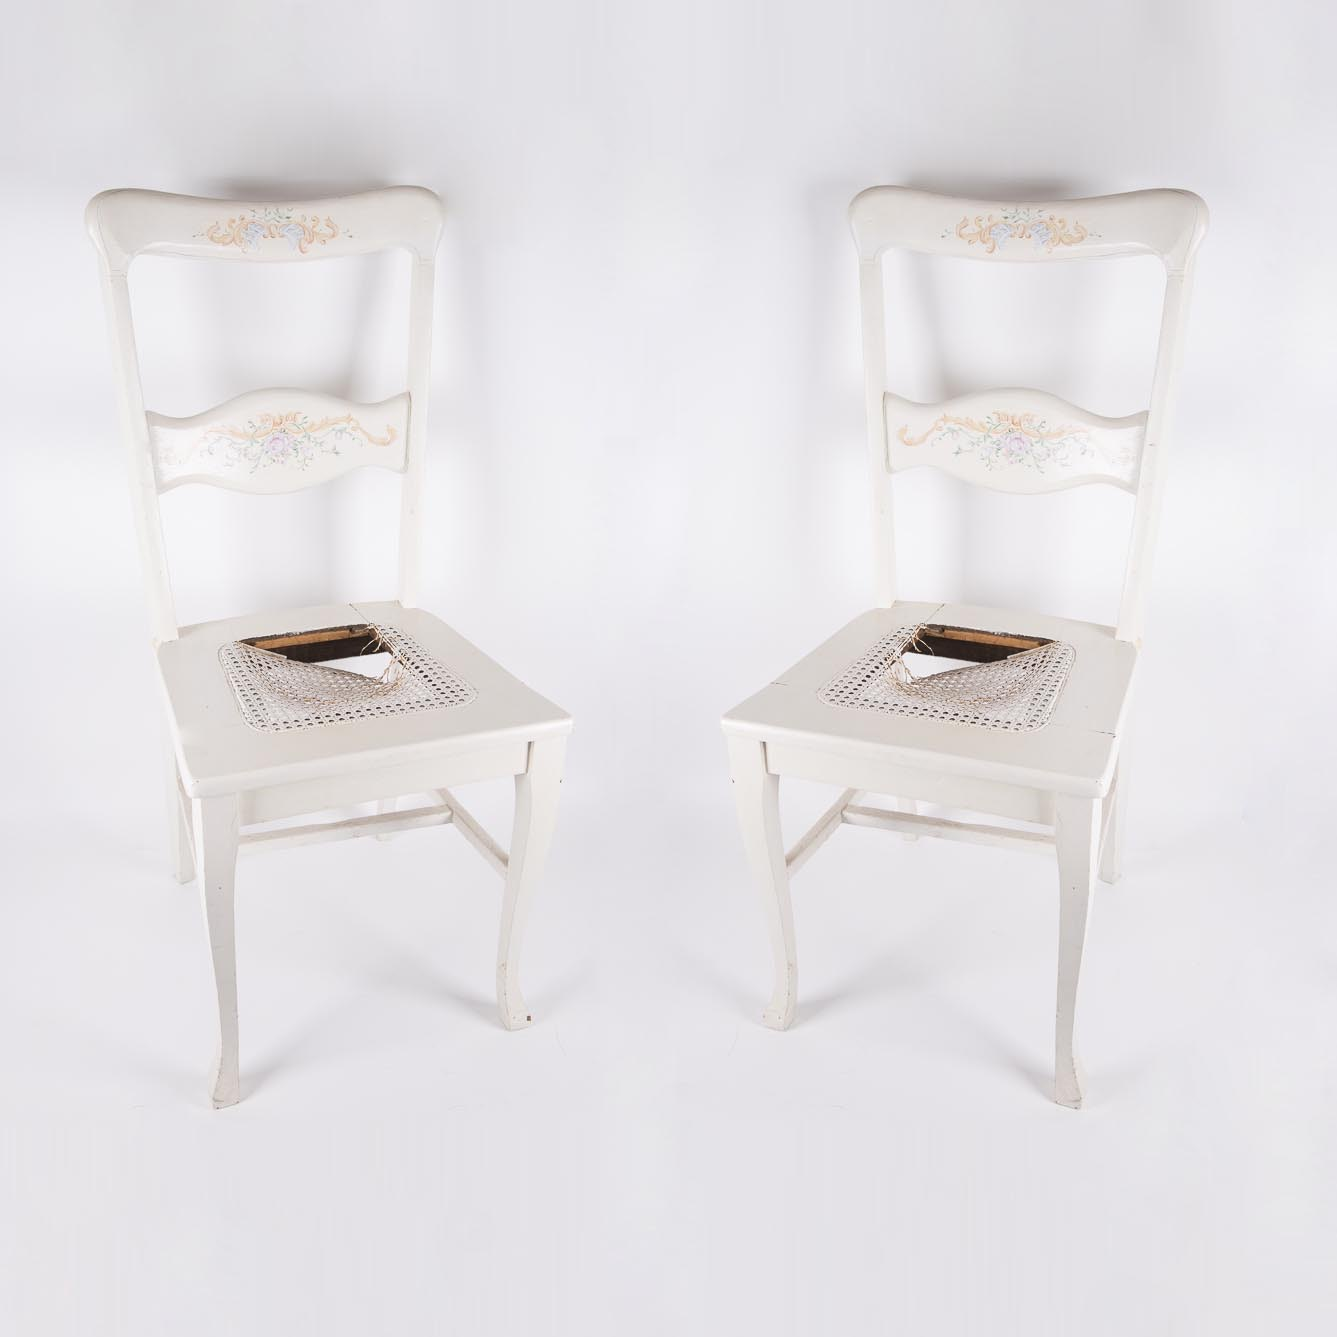 Vintage Painted Cane Seat Chairs